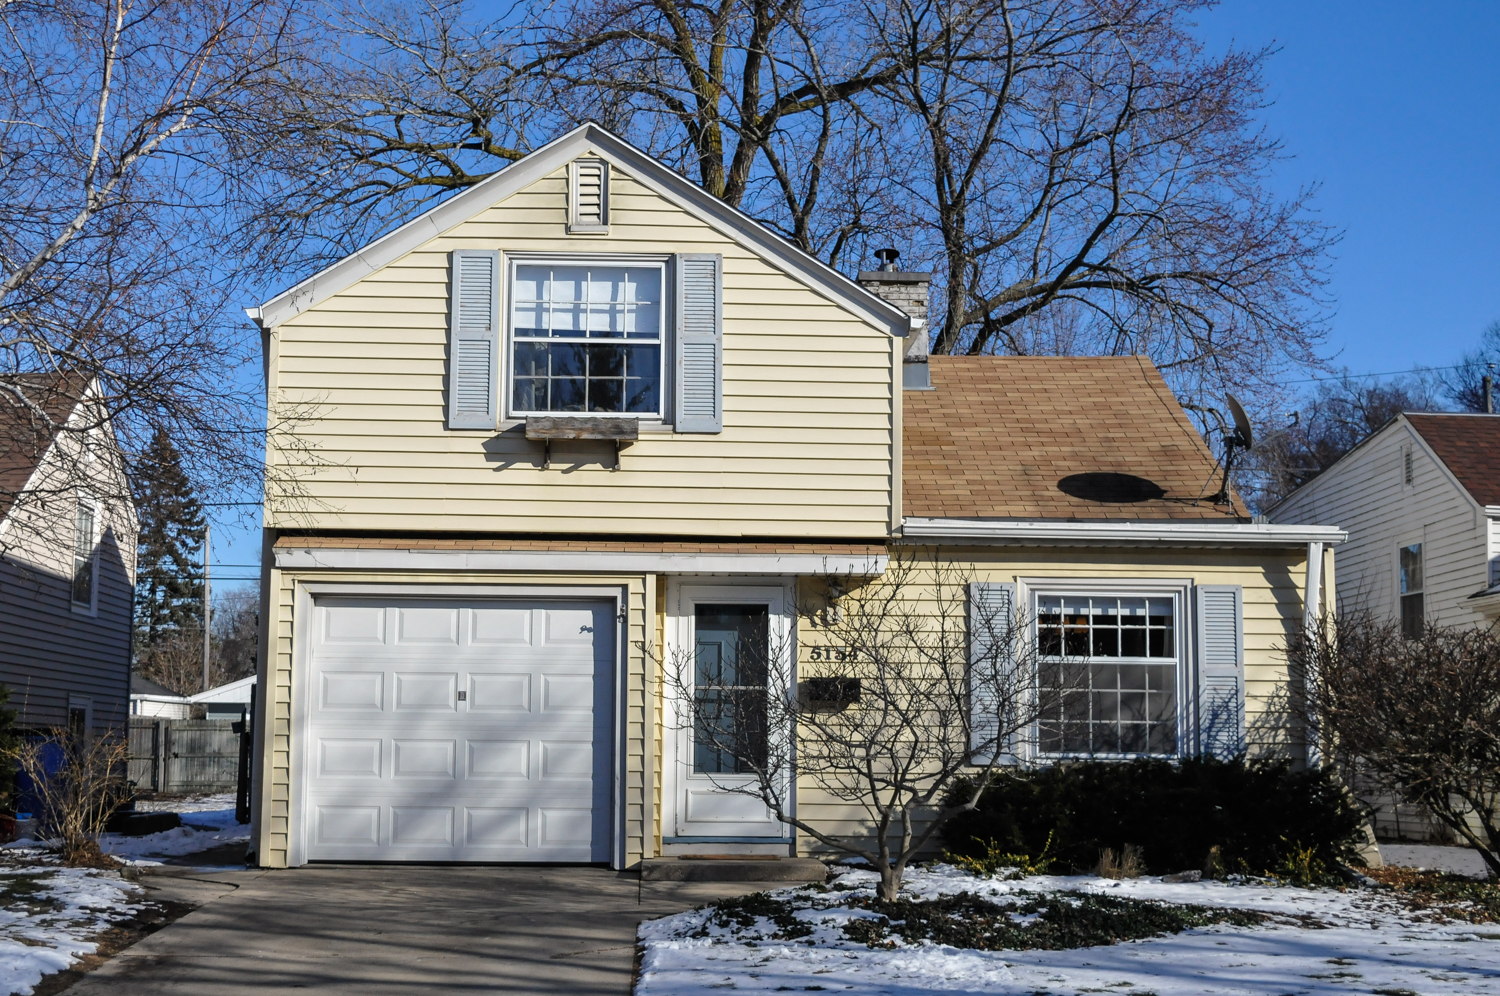 5154 N Lydell Ave, Whitefish Bay, WI 53217